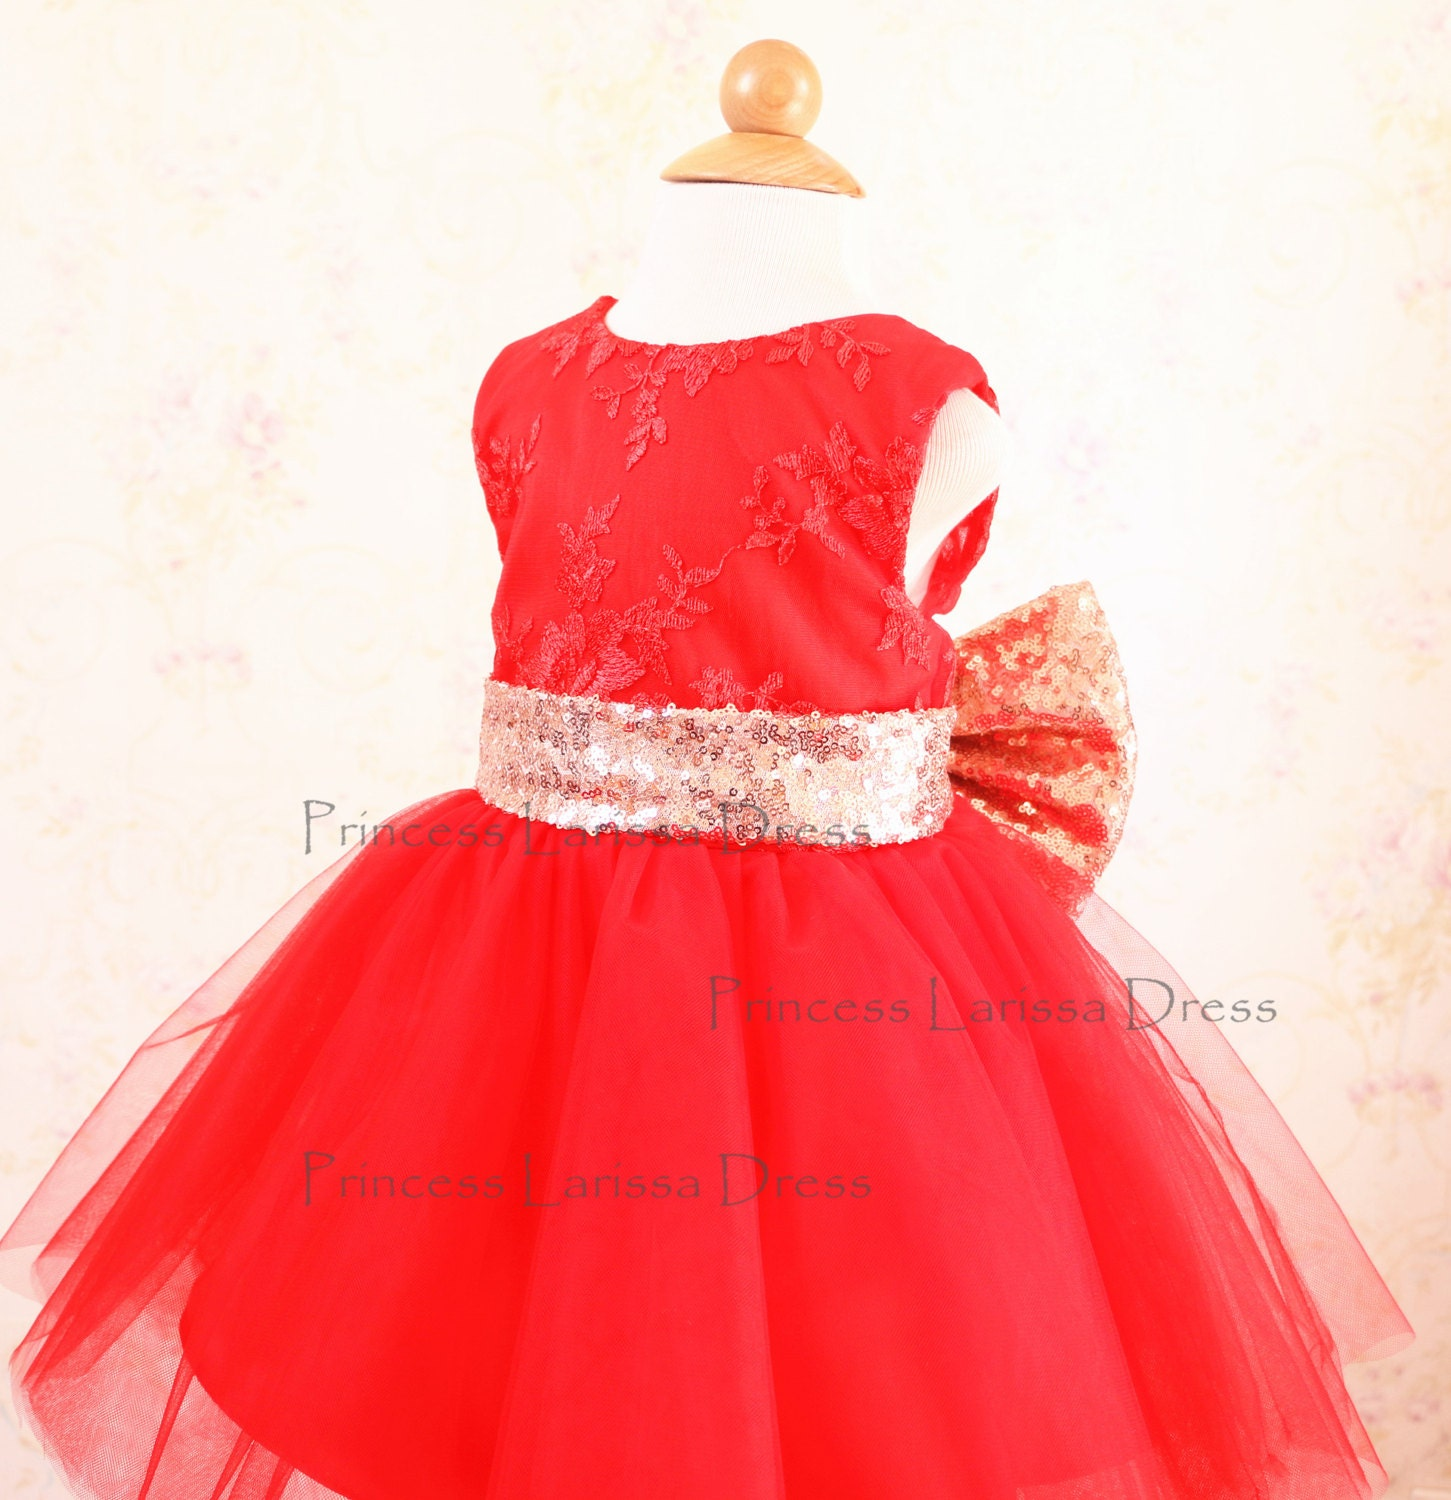 Gold Sequin Sash Toddler Pageant Dress Red Flower Girl Dress